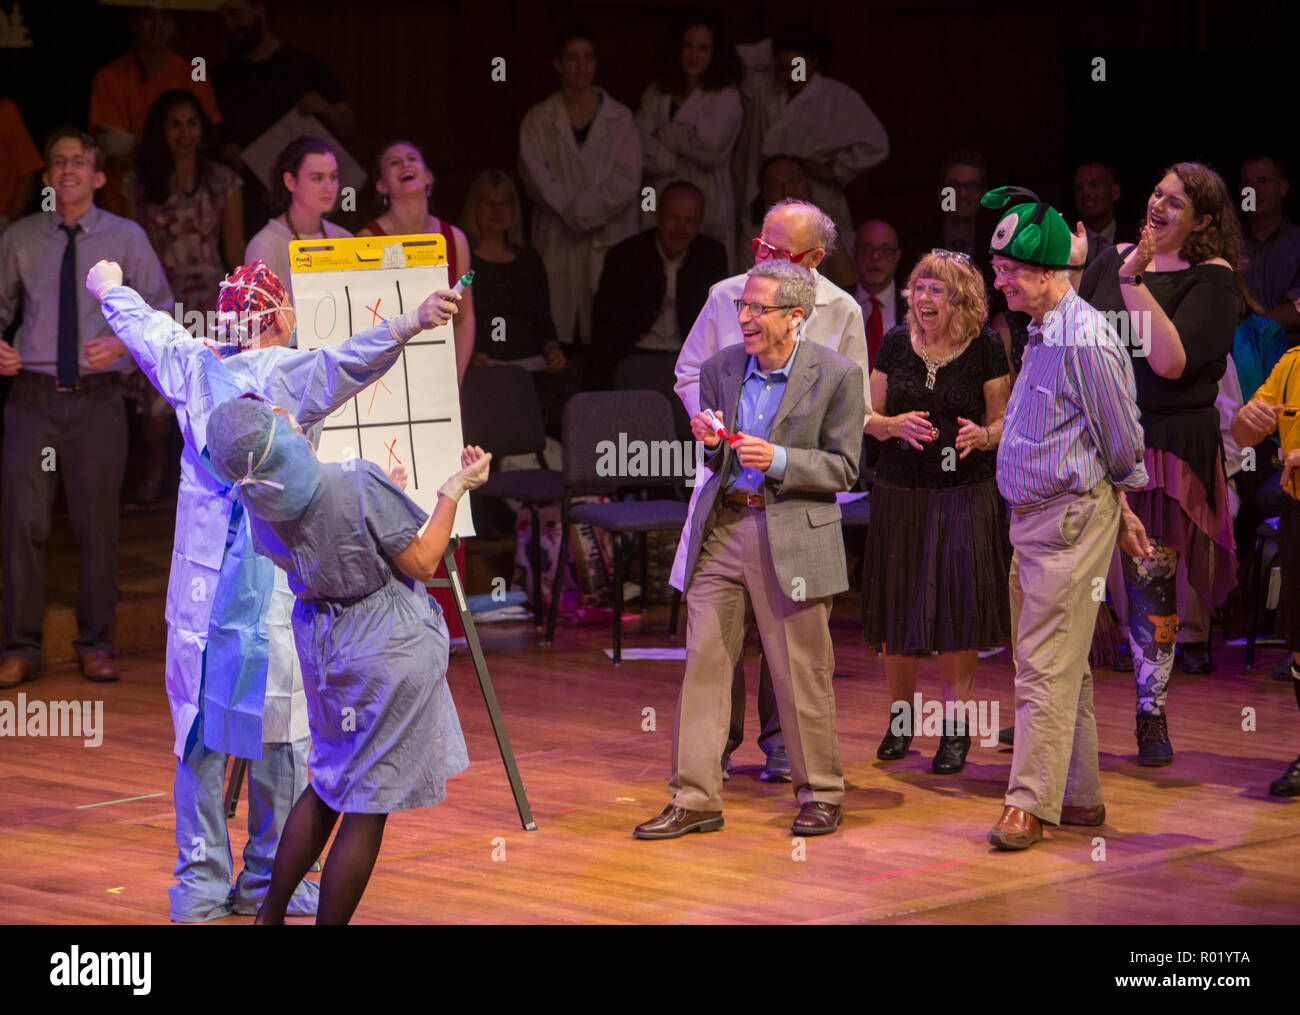 "September 23, 2016 Harvard University, Cambridge, Massachusetts, United States: Nobel laureates Rich Roberts (green Hat) and Eric Maskin (holding a marker) and Dudley Herschbach (behind Maskin), compete in a game of ""tic-toc-toe"" with a brain surgeon during the 26th First Annual Ig Nobel Prize ceremony at Sanders Theatre, Memorial Hall, Harvard University. Stock Photo"